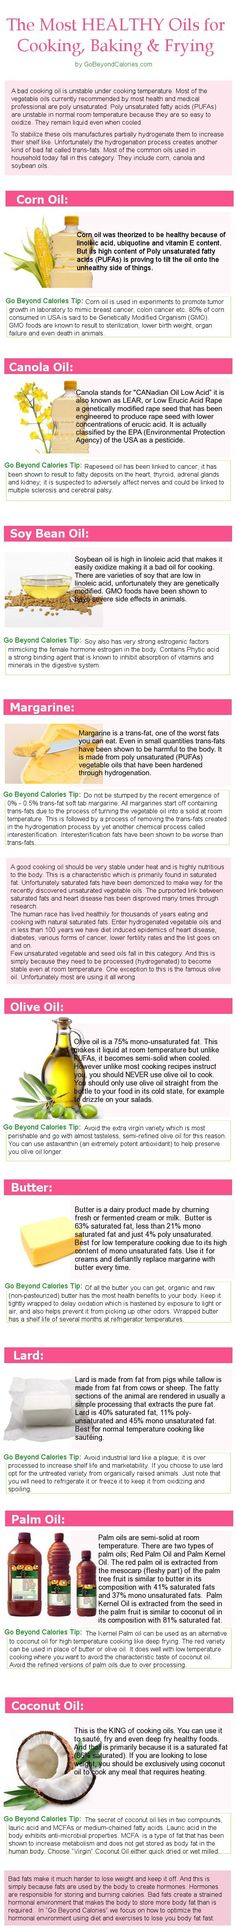 The most healthy oils for cooking baking healthy food healthy living healthy food facts cooking Healthy Oils, Get Healthy, Healthy Recipes, Healthy Cooking, Healthy Food, Healthy Habits, Eating Healthy, Nutrition Tips, Health And Nutrition